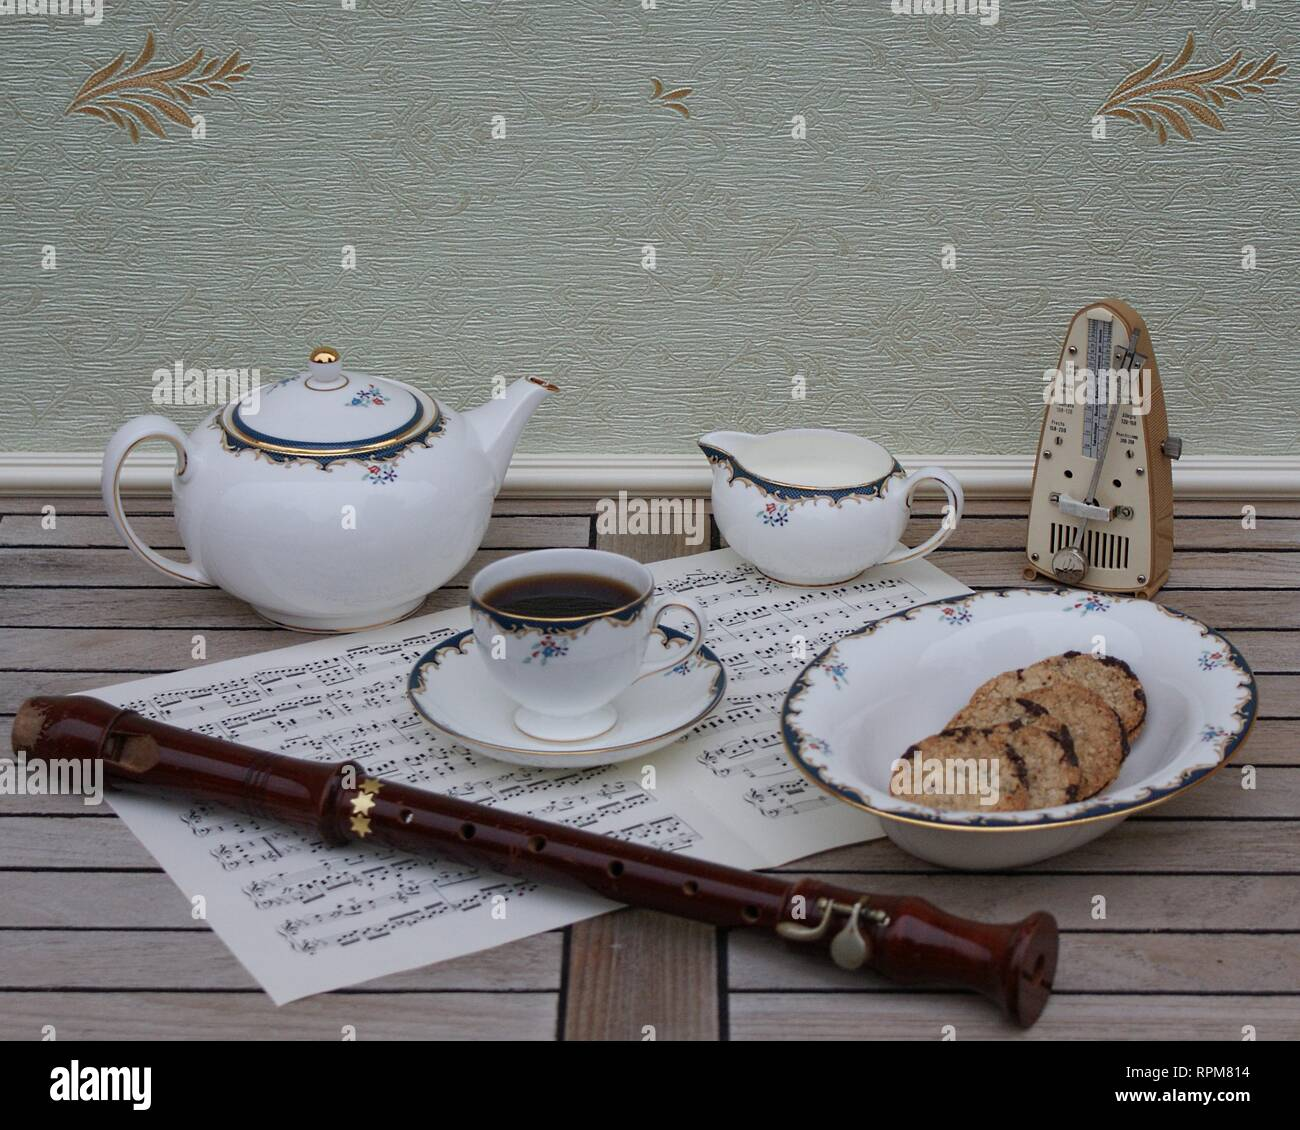 English teacup with saucer, teapot, cream jug and a cake bowl, fine bone china porcelain, metronome for music and a block flute on a sheet of music - Stock Image